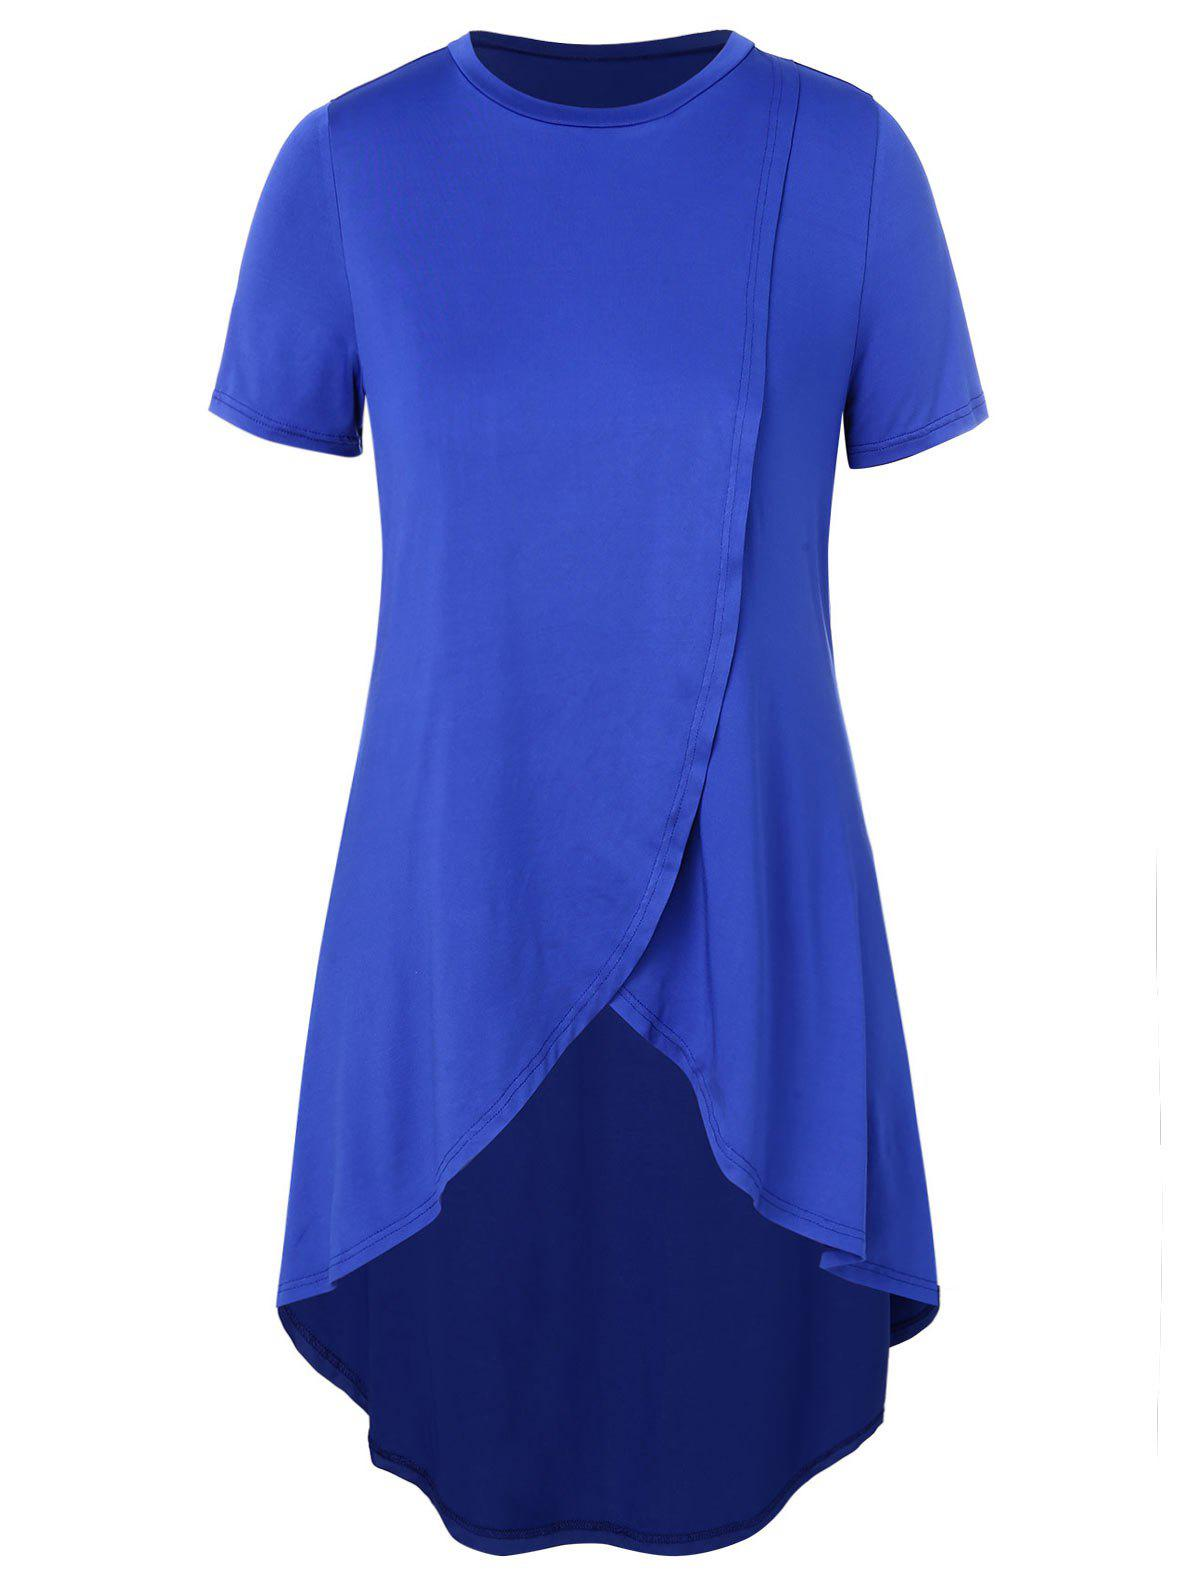 Plus Size High Low Short Sleeve Top - BLUE 4X